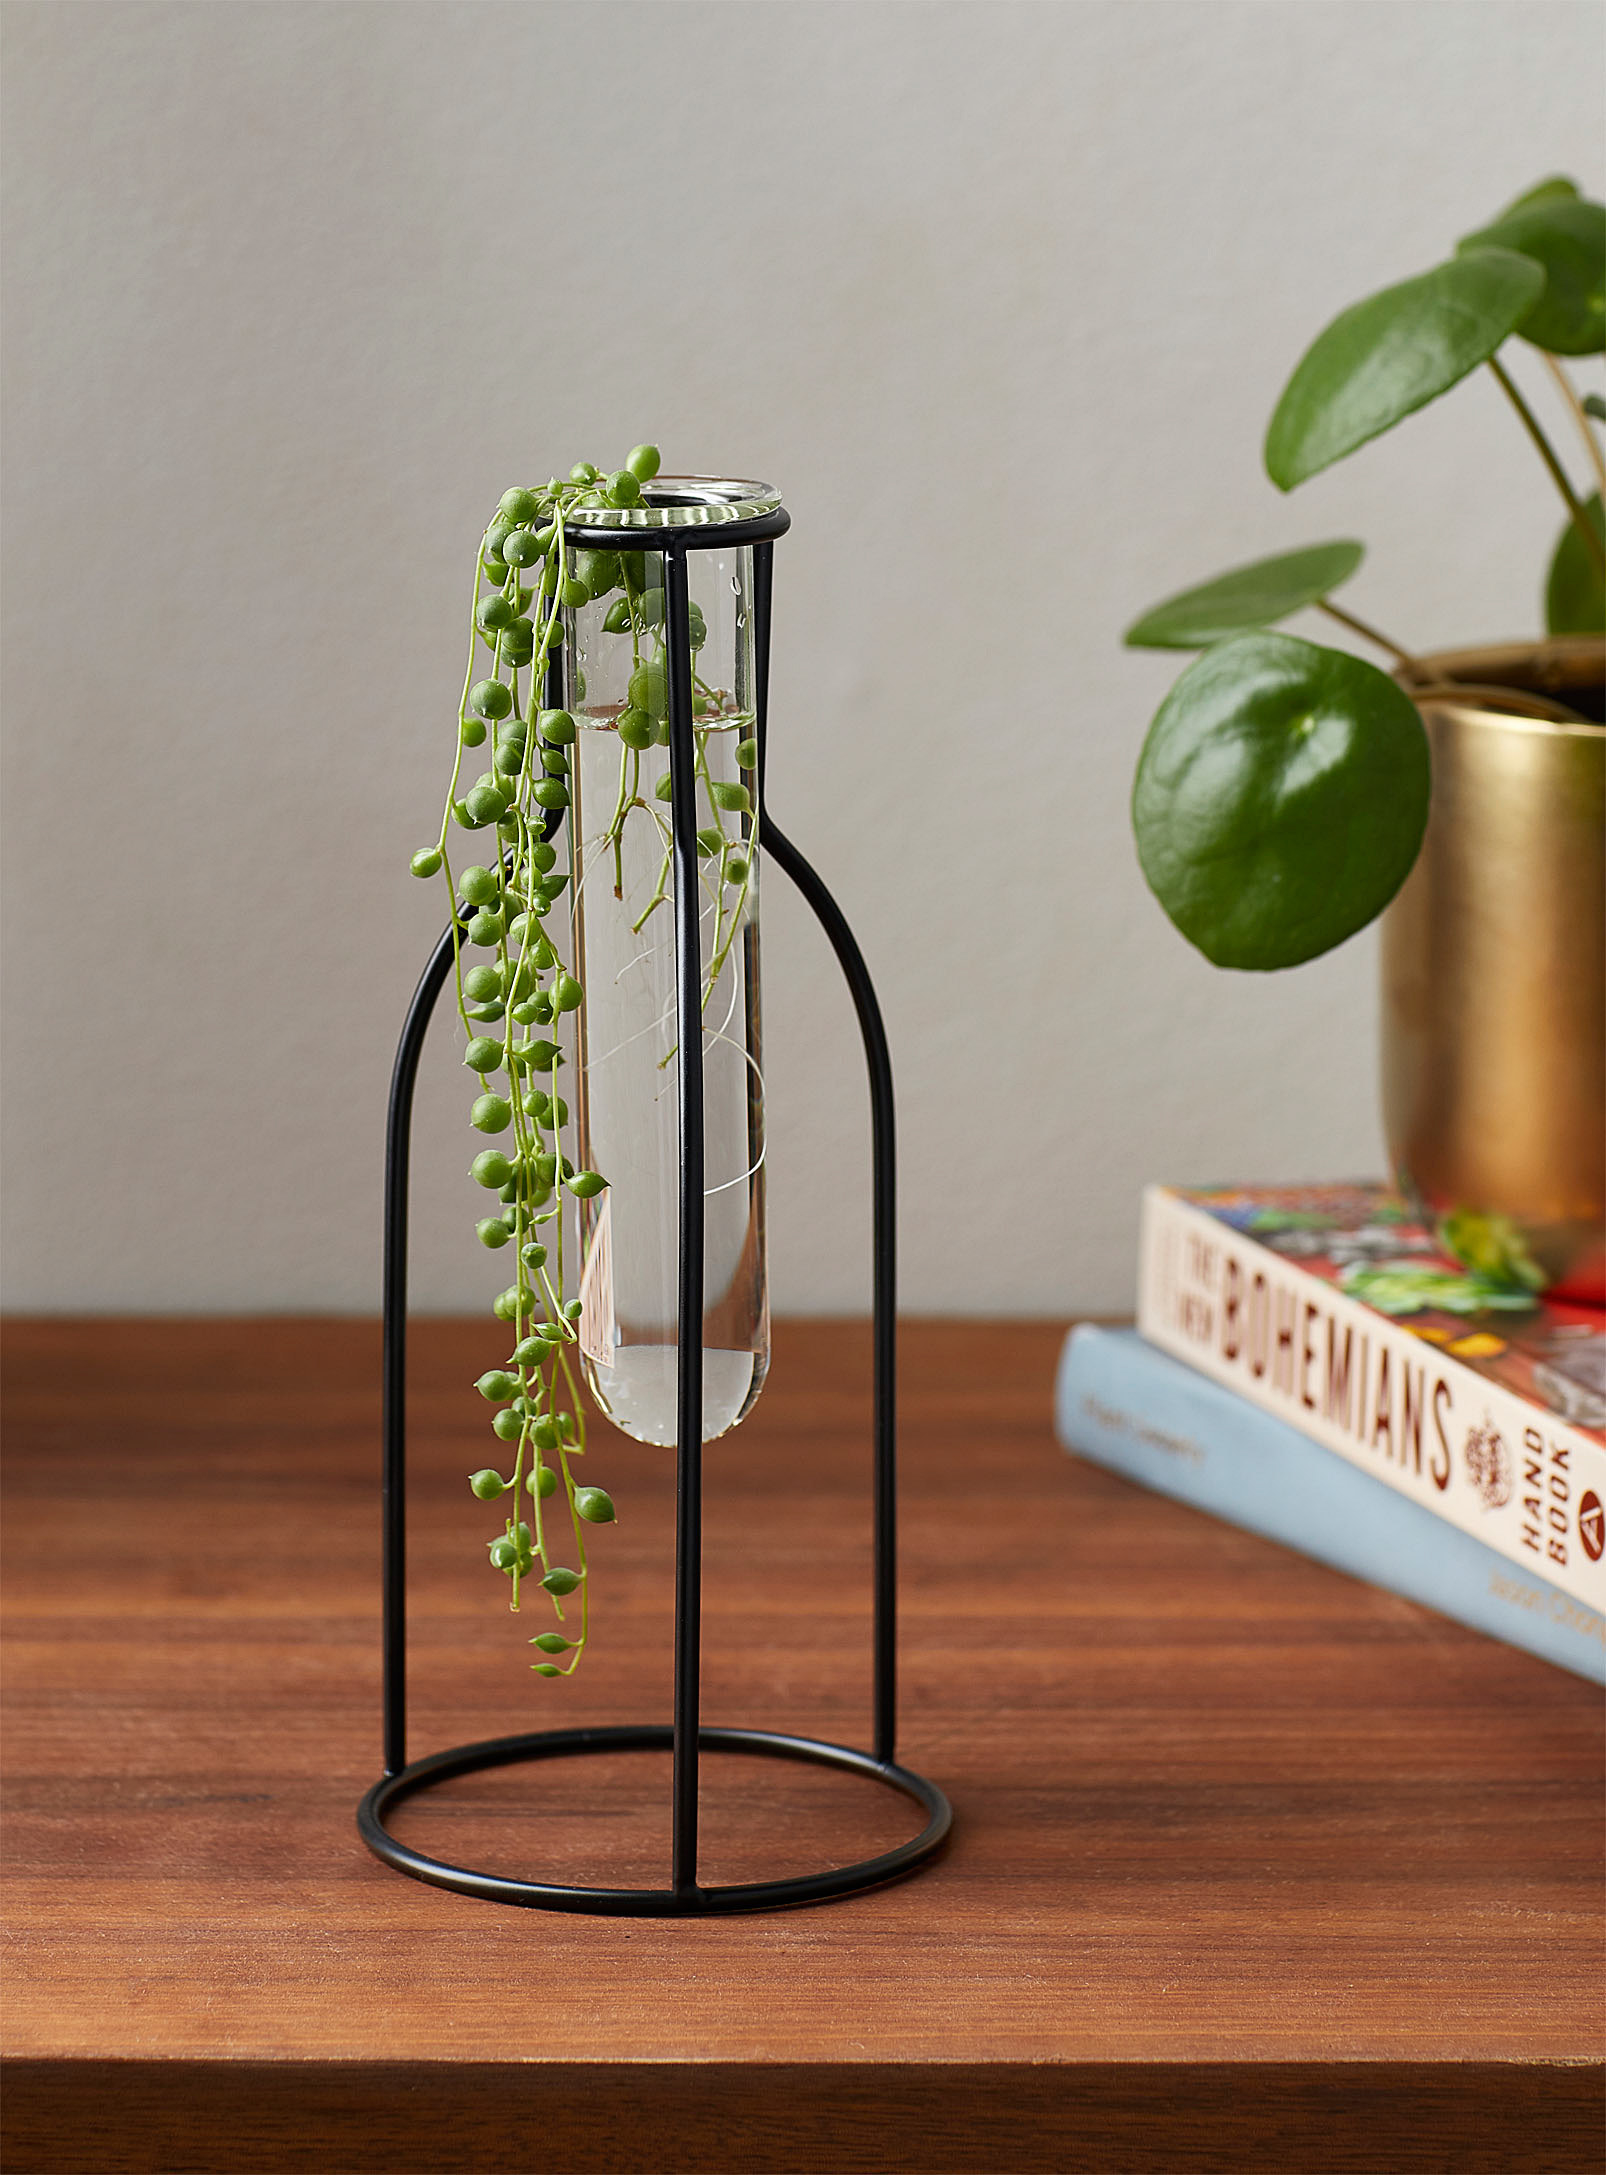 plant in vial on stand